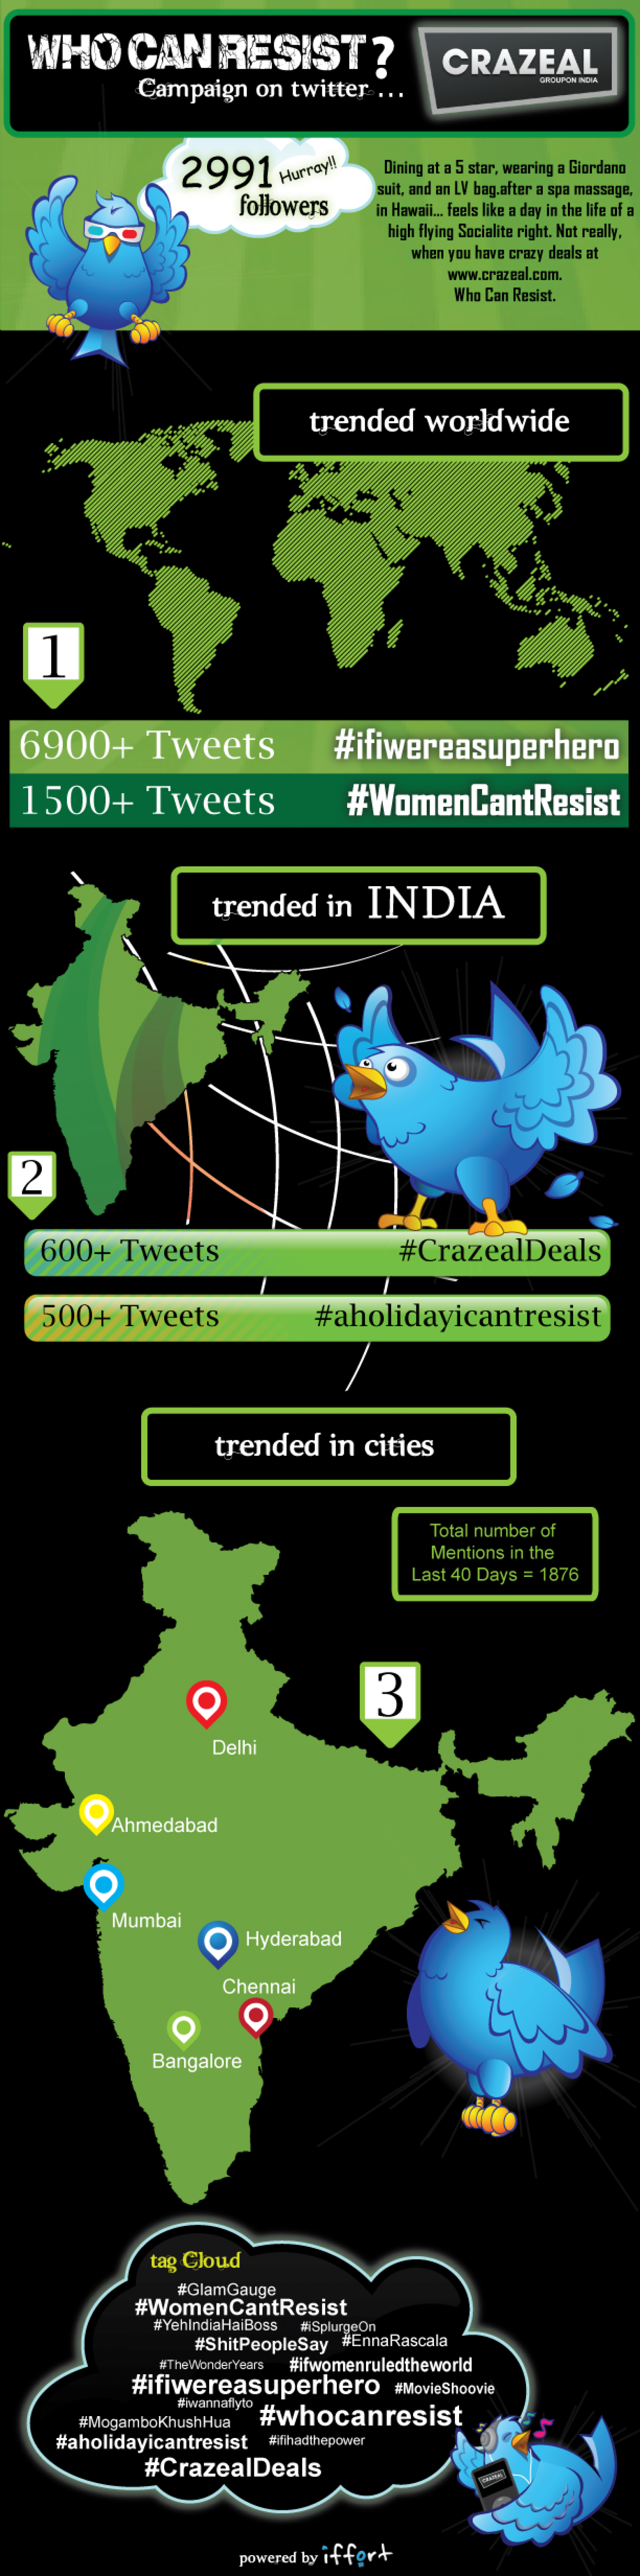 Crazeal's 'Who Can Resist' campaign on Twitter Infographic